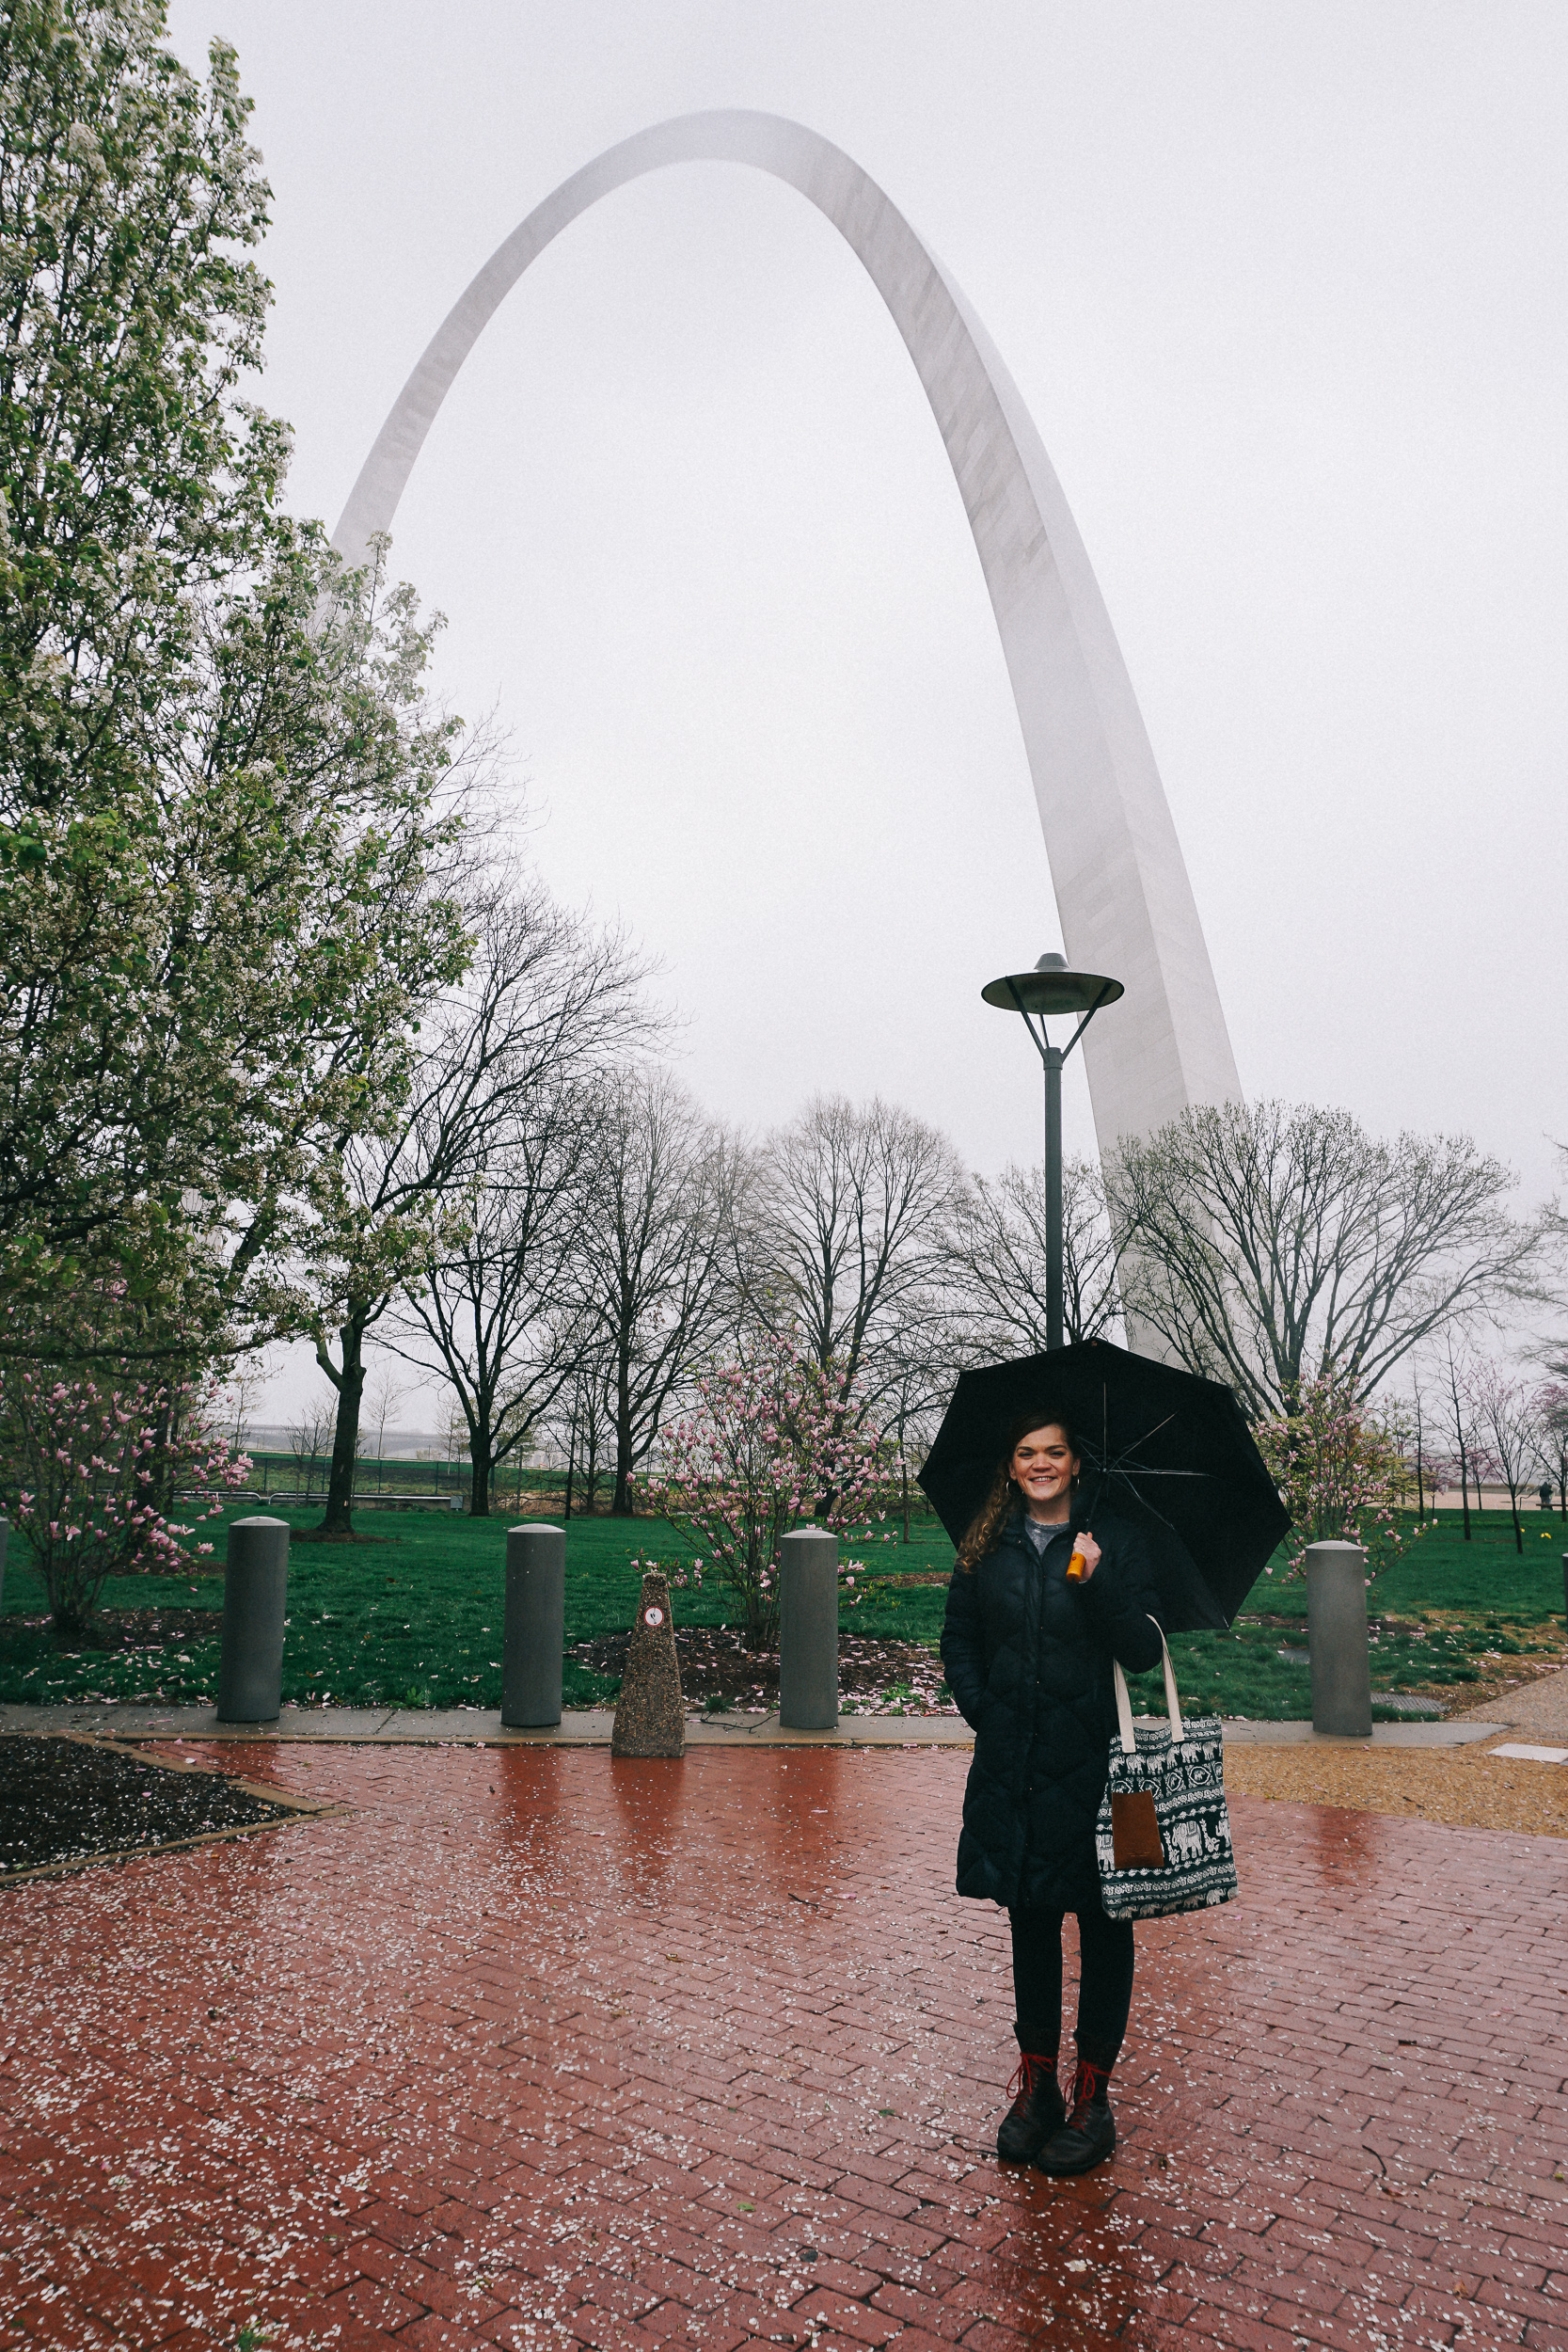 st louis_laura_suprenant_photography_travel-11.jpg